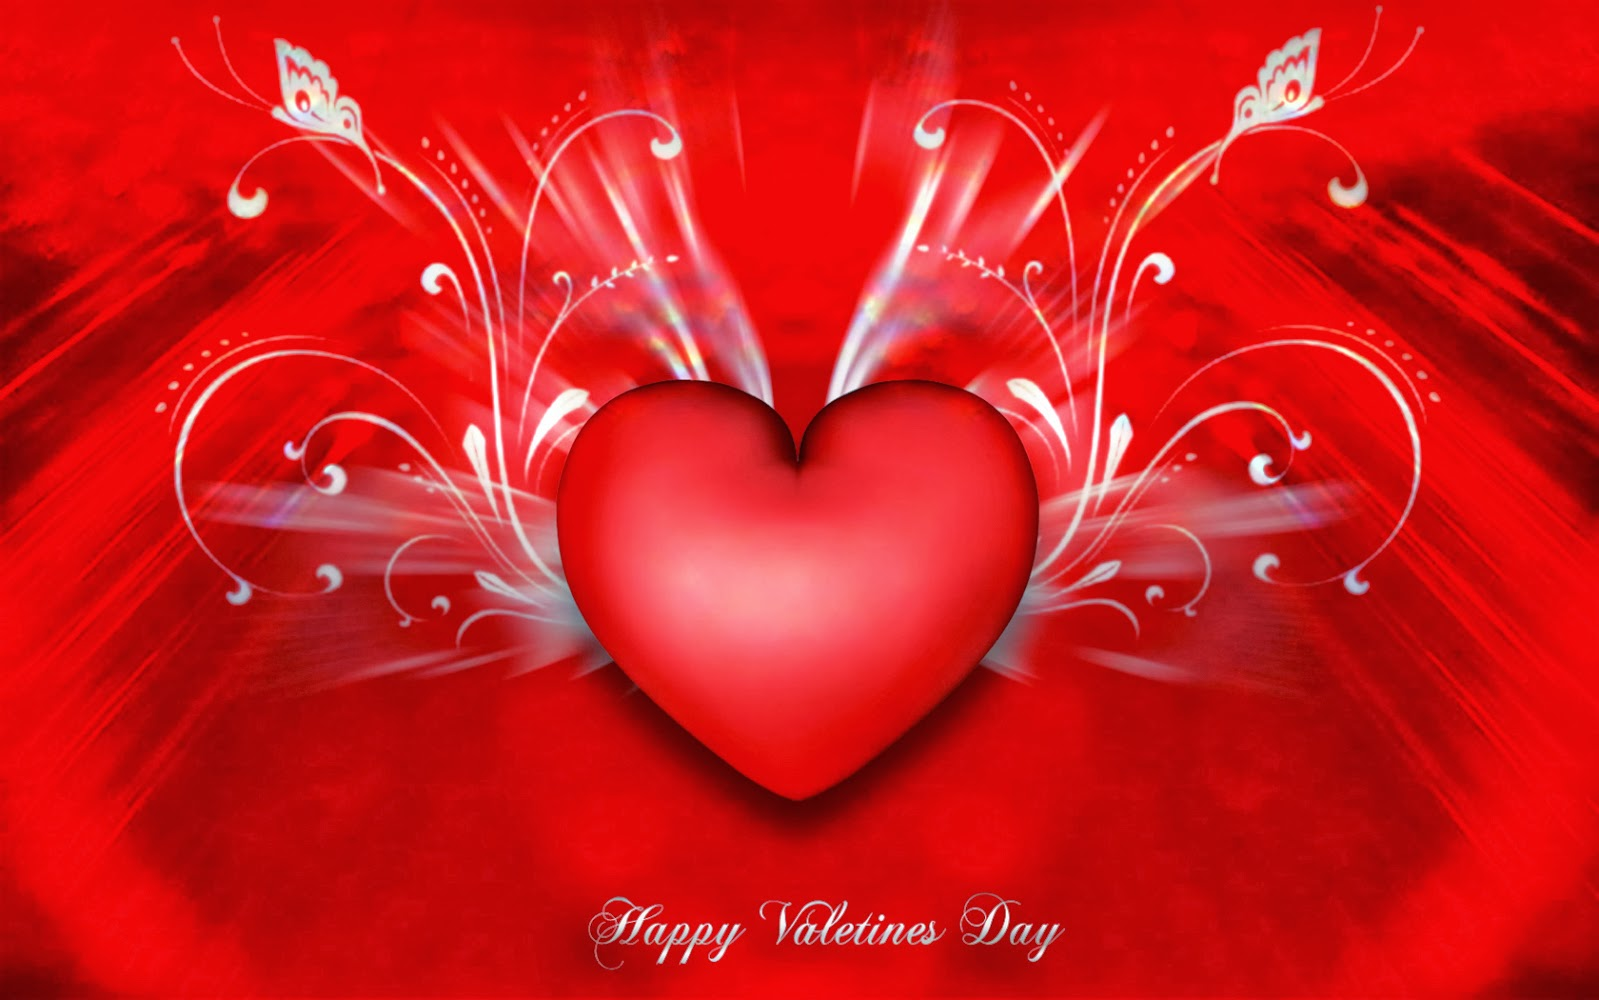 valentine day hd wallpapers, valentine day 2014 free wallpapers, valentine day red heart wallpapers valentine day special effect wallpapers